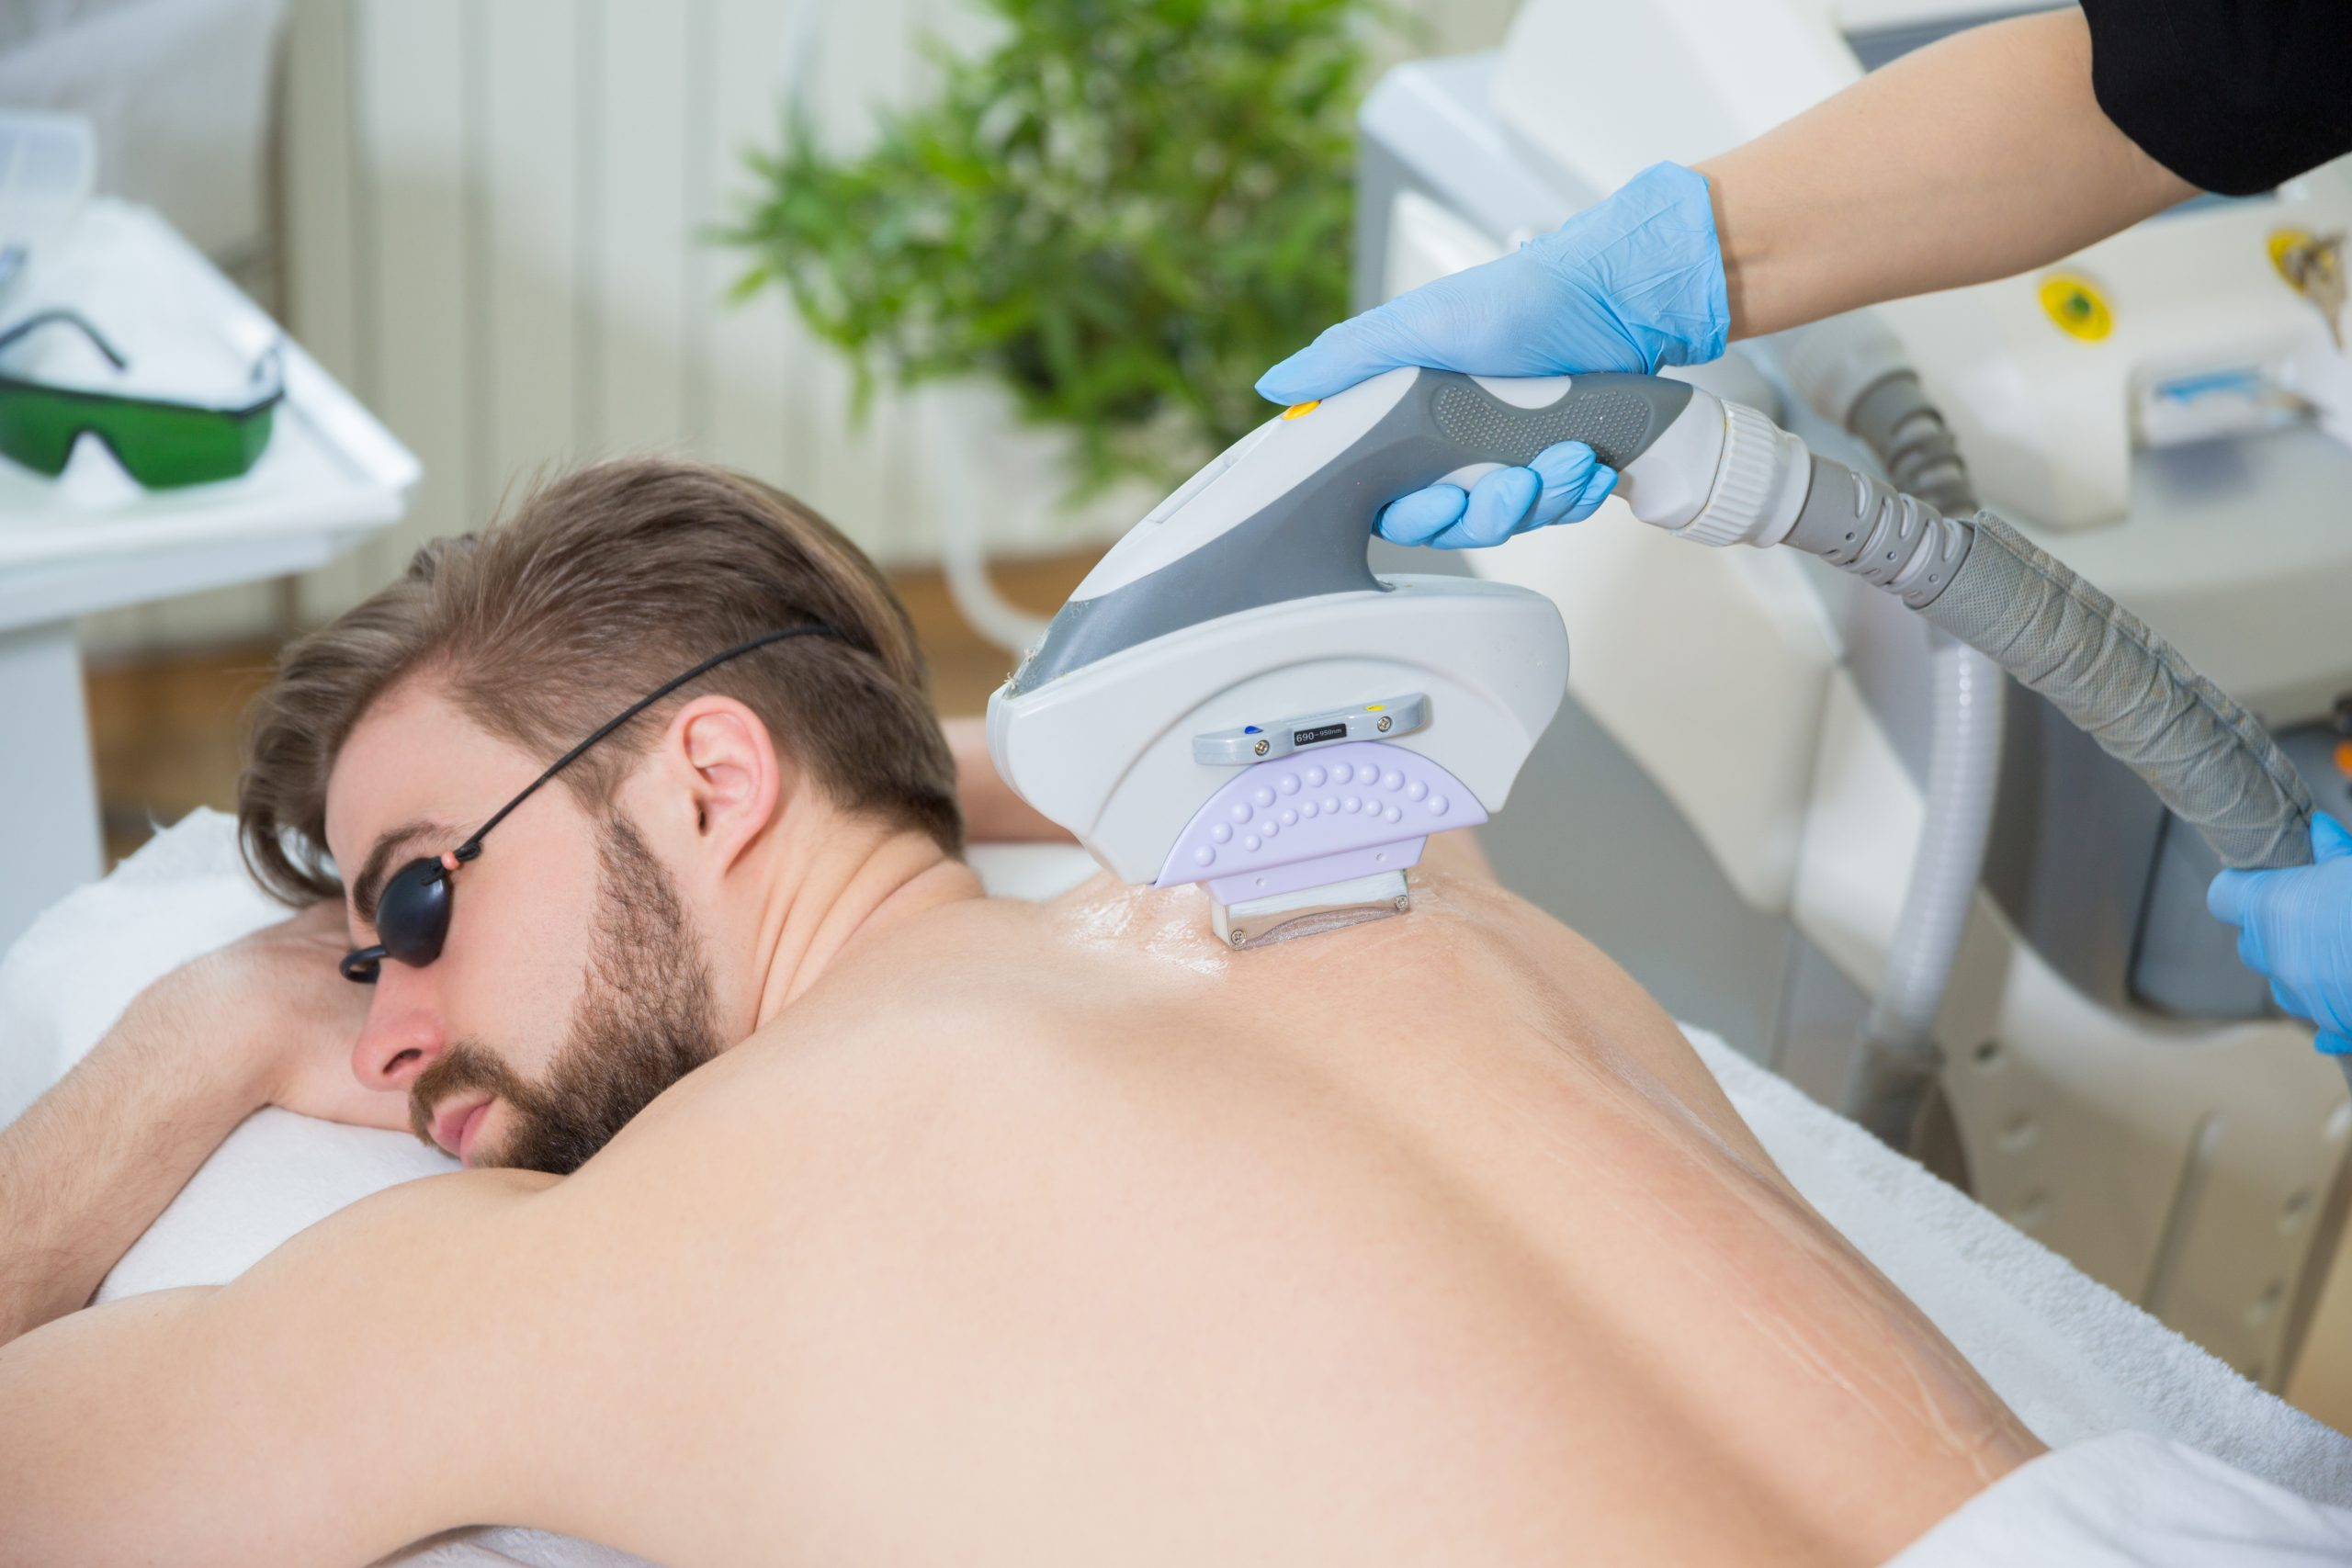 Laser hair removal, back hair removal, How to Manscape